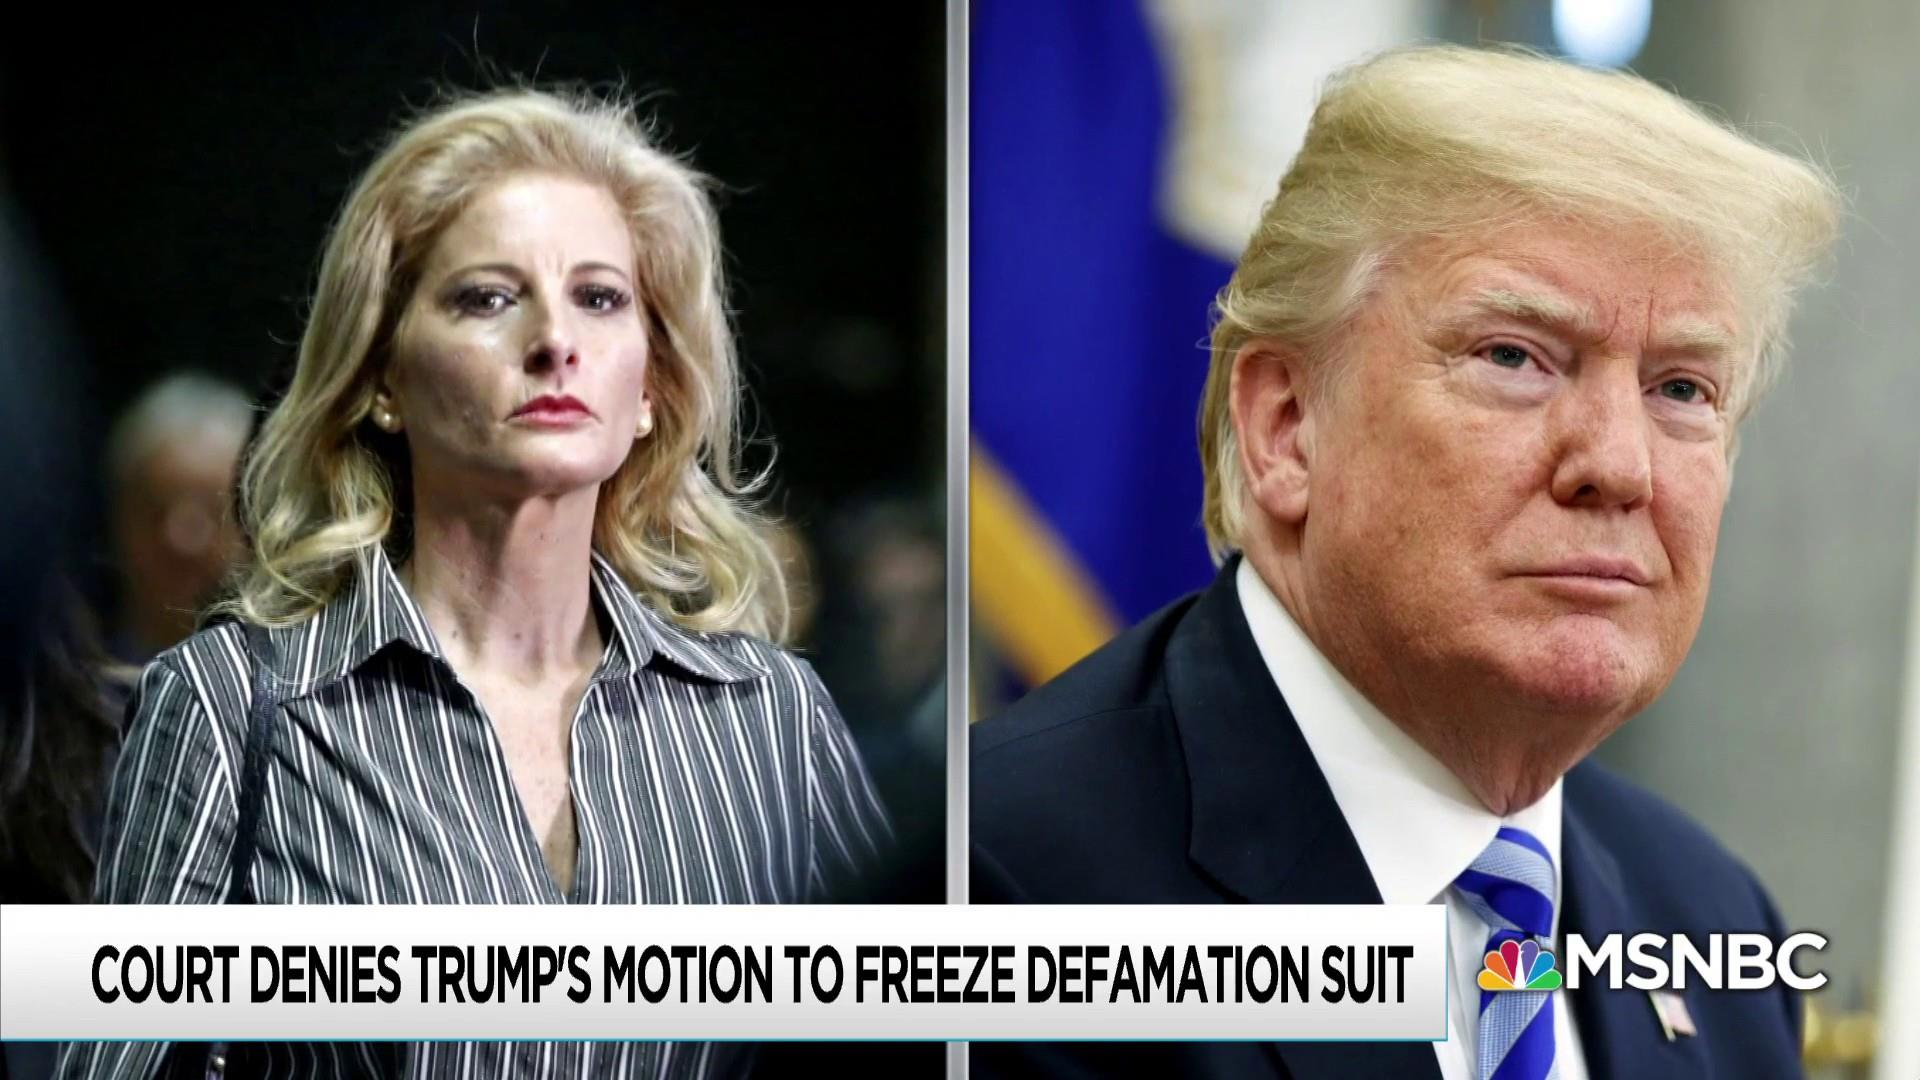 Court to Summer Zervos on discovery in Trump lawsuit: Go for it